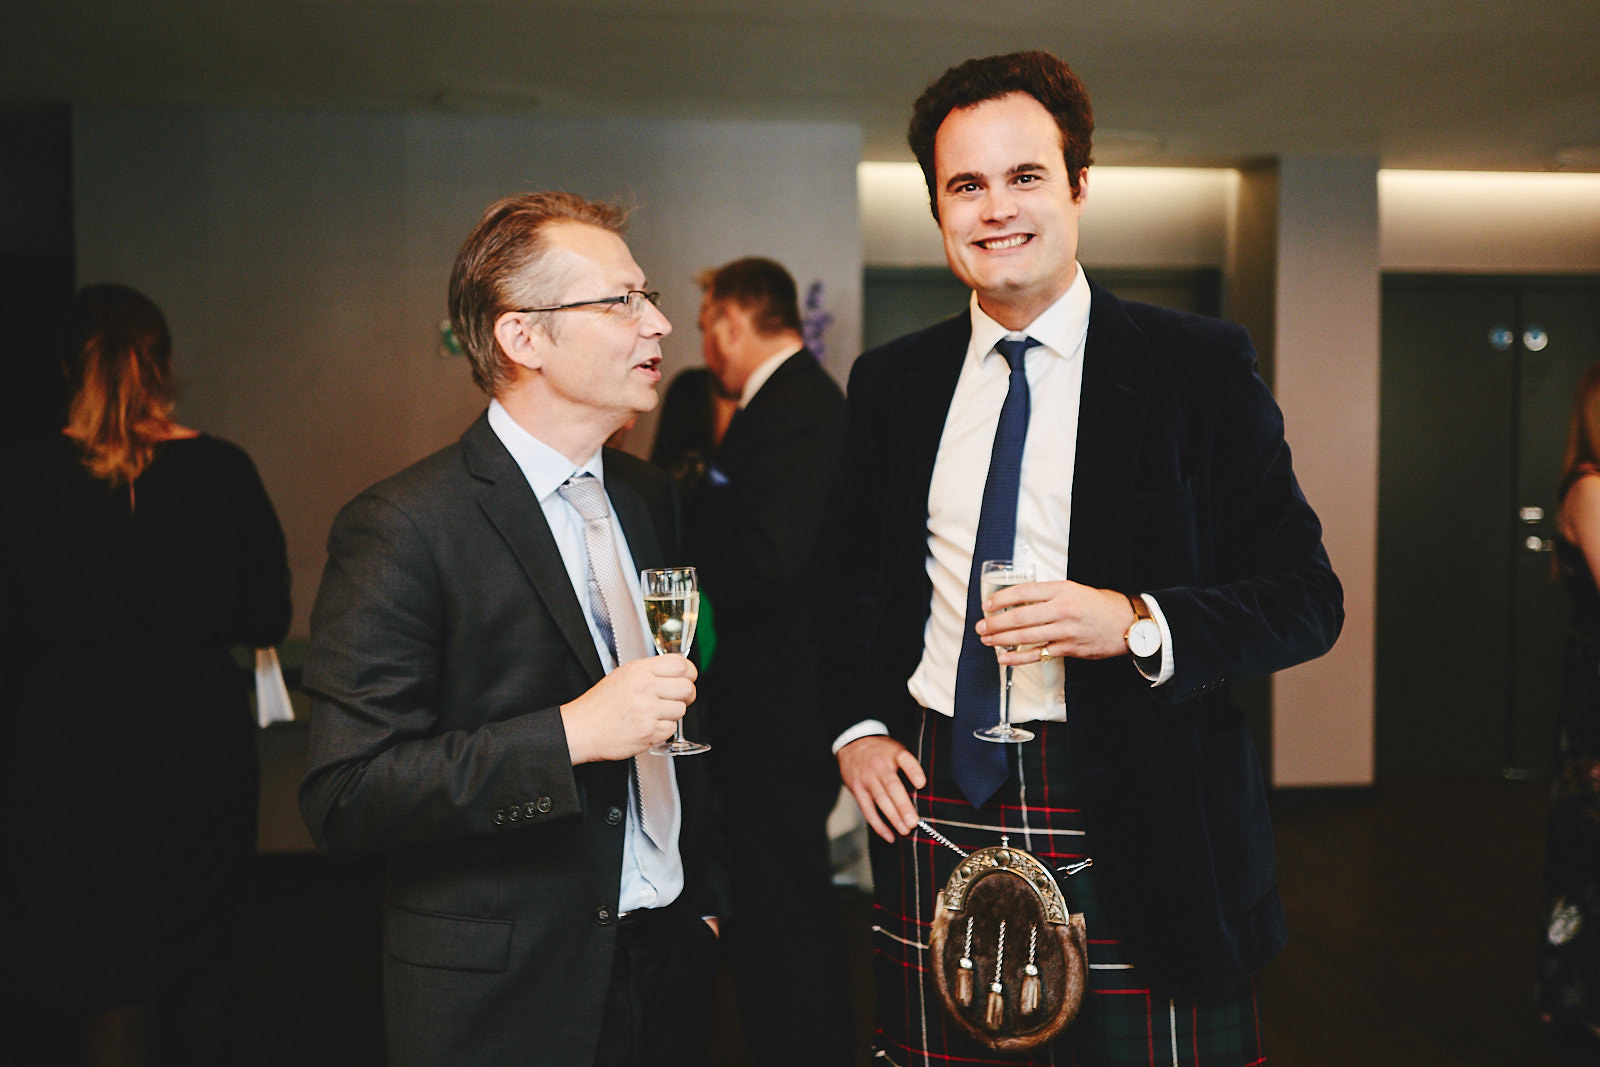 US consulate Edinburgh 4th of July celebration 2018 - 005 web.jpg